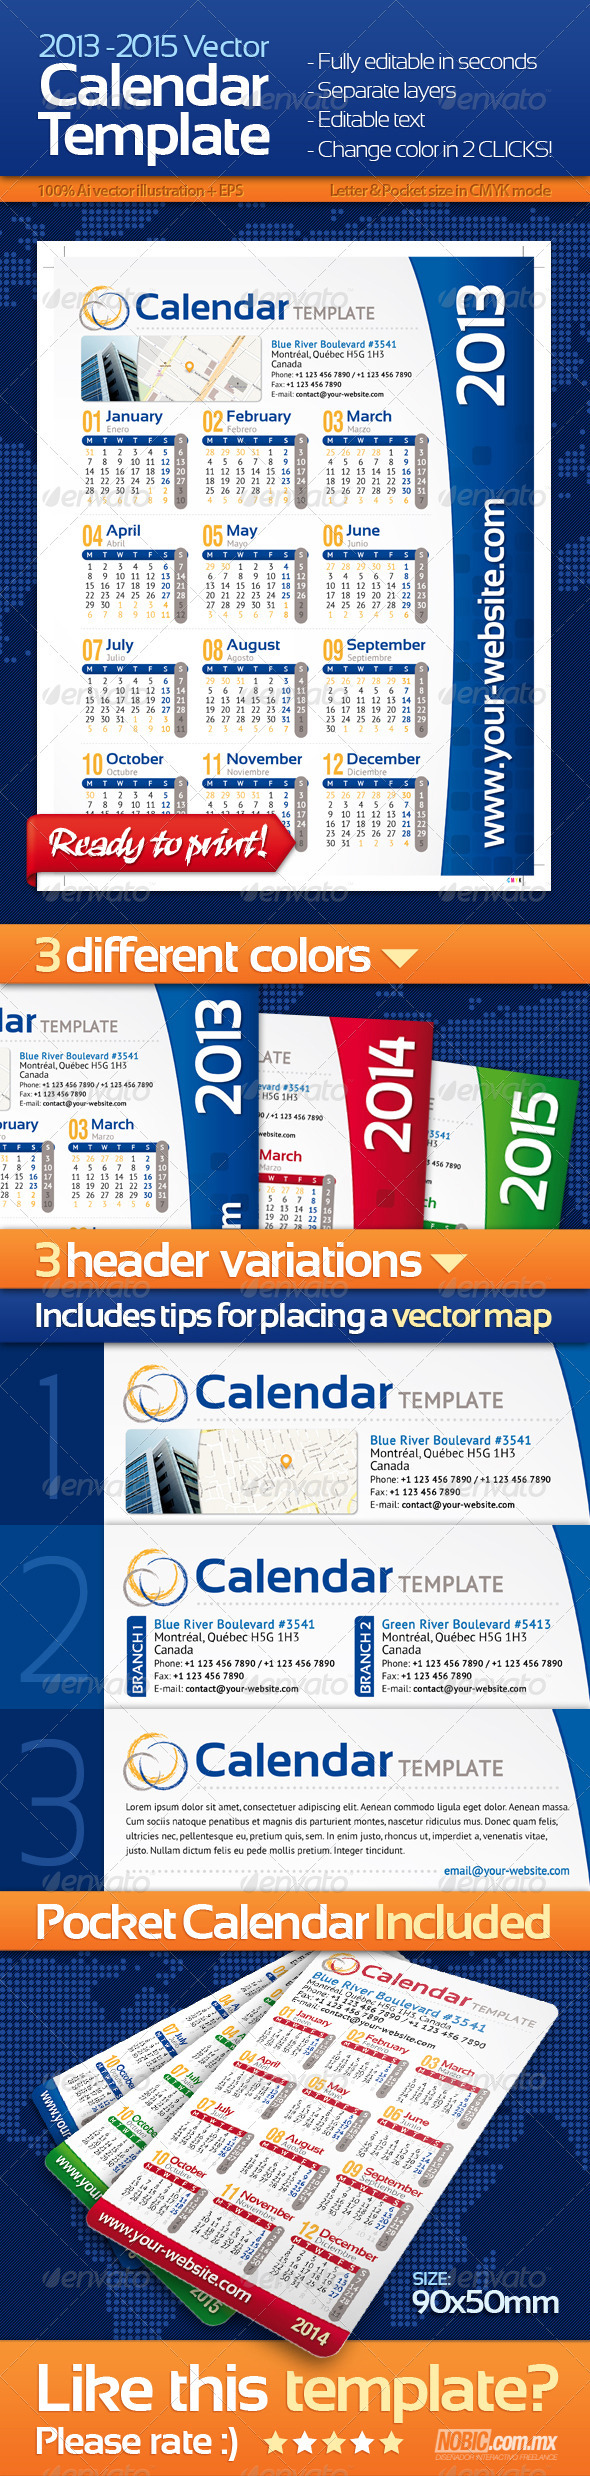 GraphicRiver 2013 2014 and 2015 Calendar Template 2879999